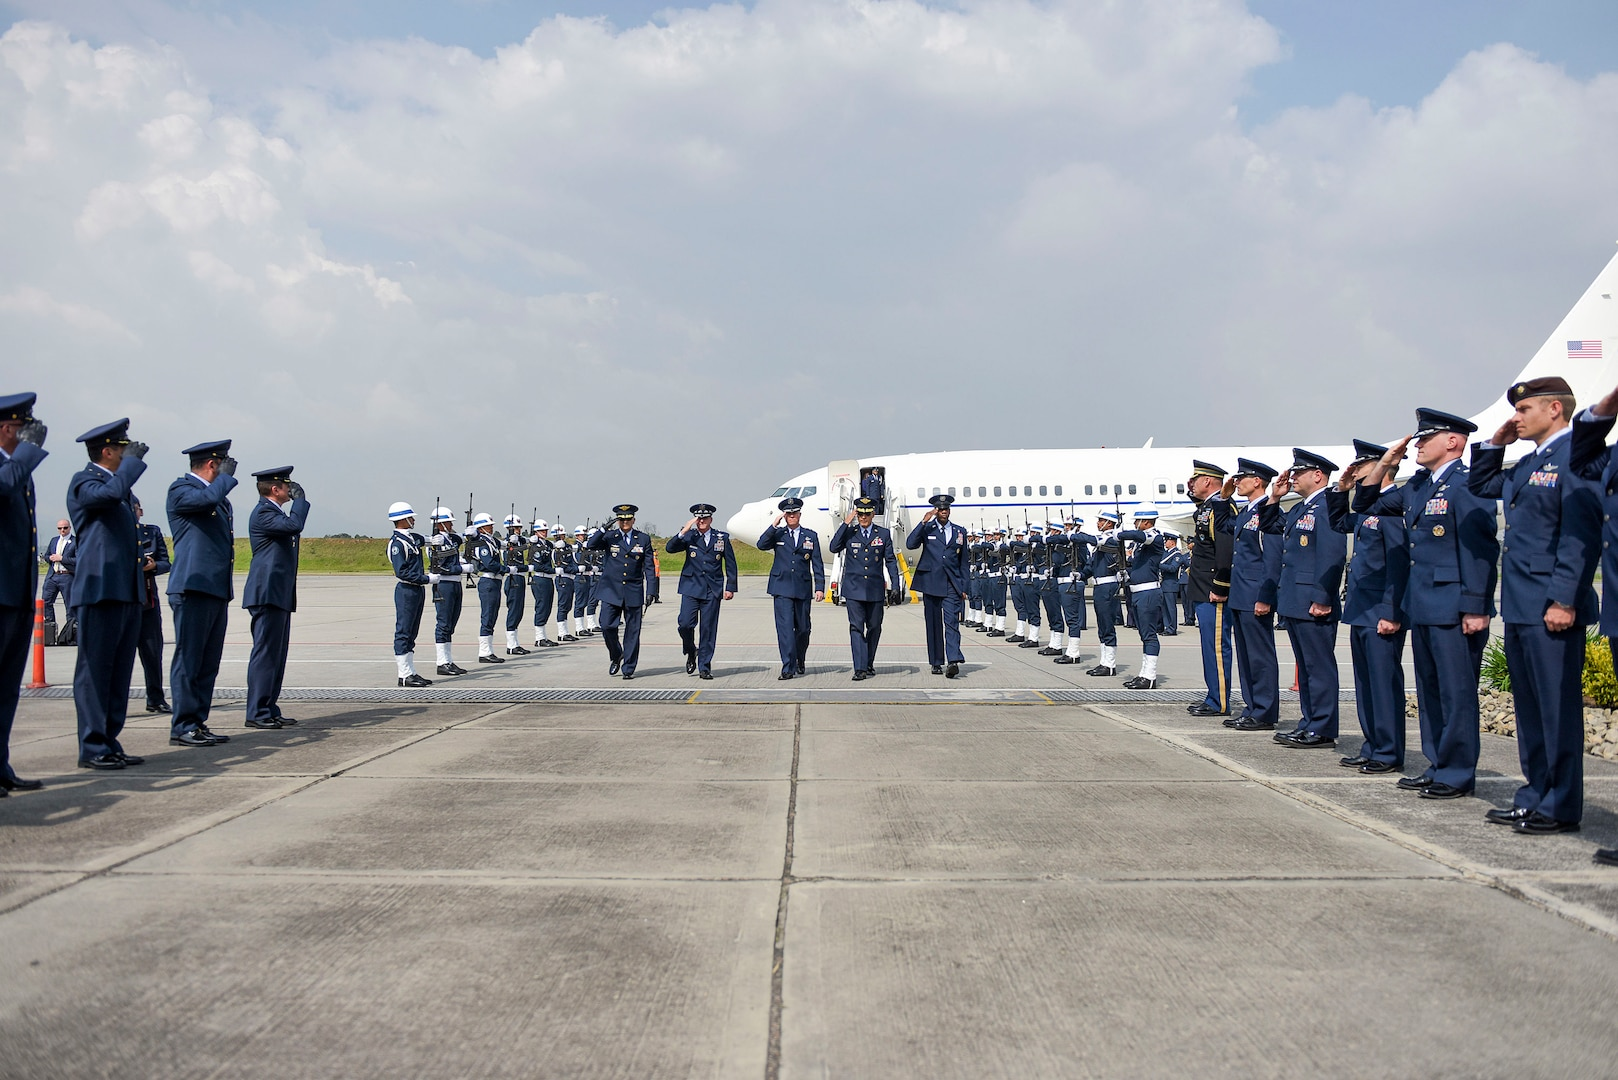 Air Force Chief of Staff Gen. David L. Goldfein is welcomed to Bogota, Colombia, Nov. 14, 2018, by members of the U.S. and Colombian air forces. Regional partnerships like that of the U.S. and Colombia reflect an enduring promise of a cooperative, prosperous and secure hemisphere. (U.S. Air Force photo by Tech Sgt. Anthony Nelson Jr.)